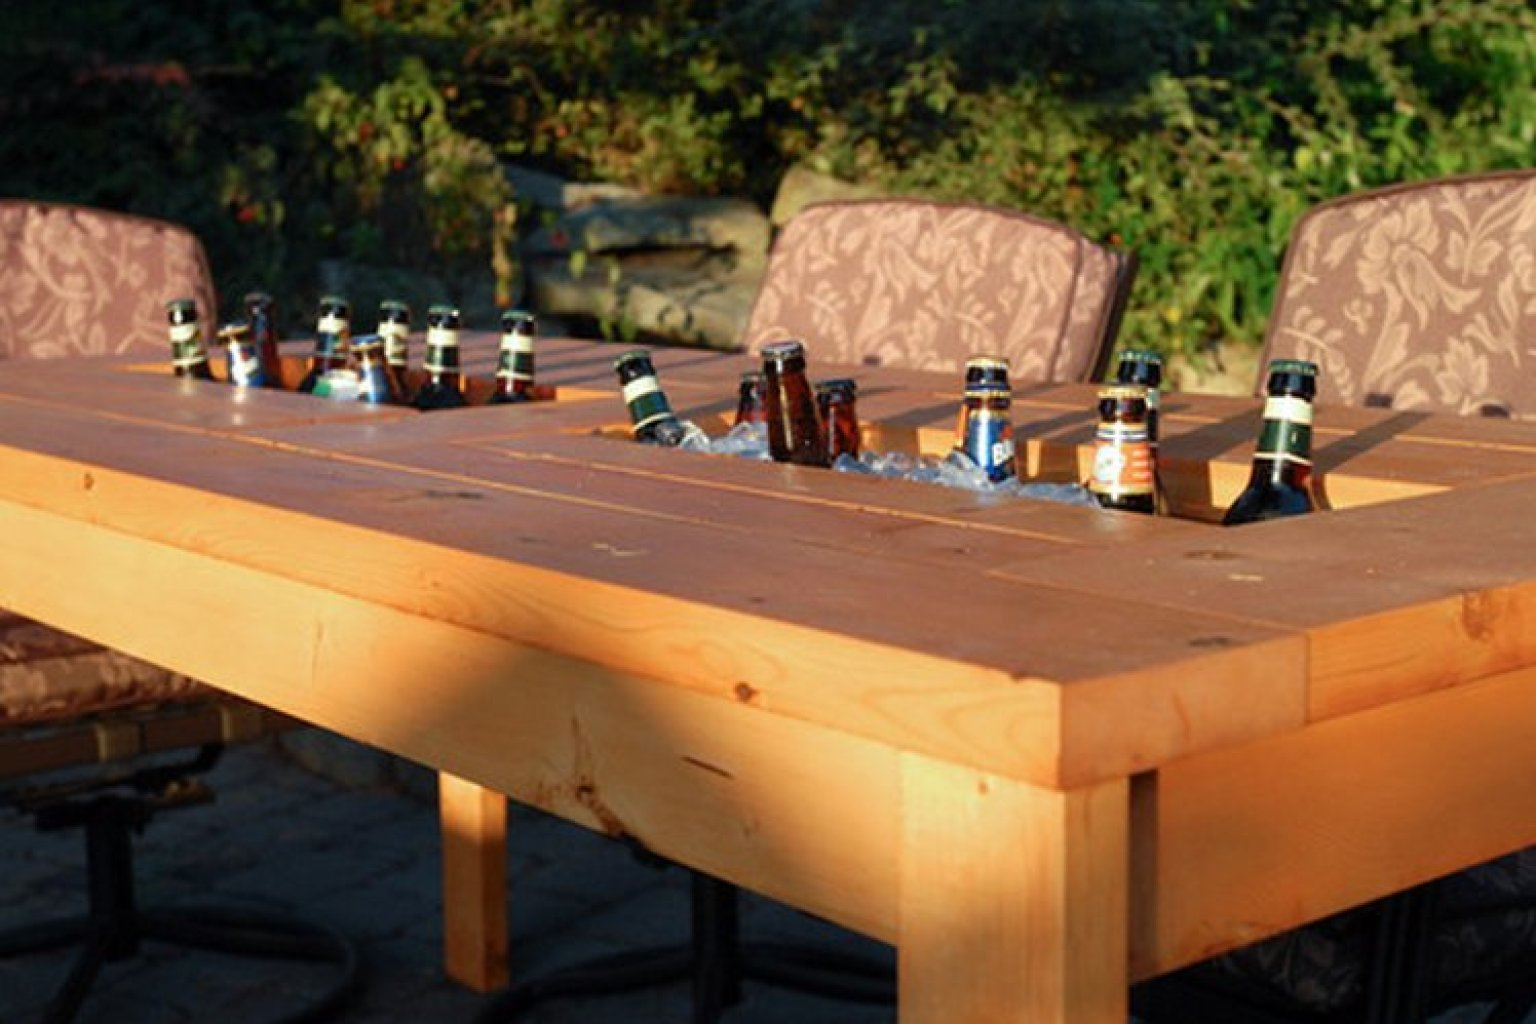 DIY Table With Built In Drink Coolers Is The Perfect Way To Beat The